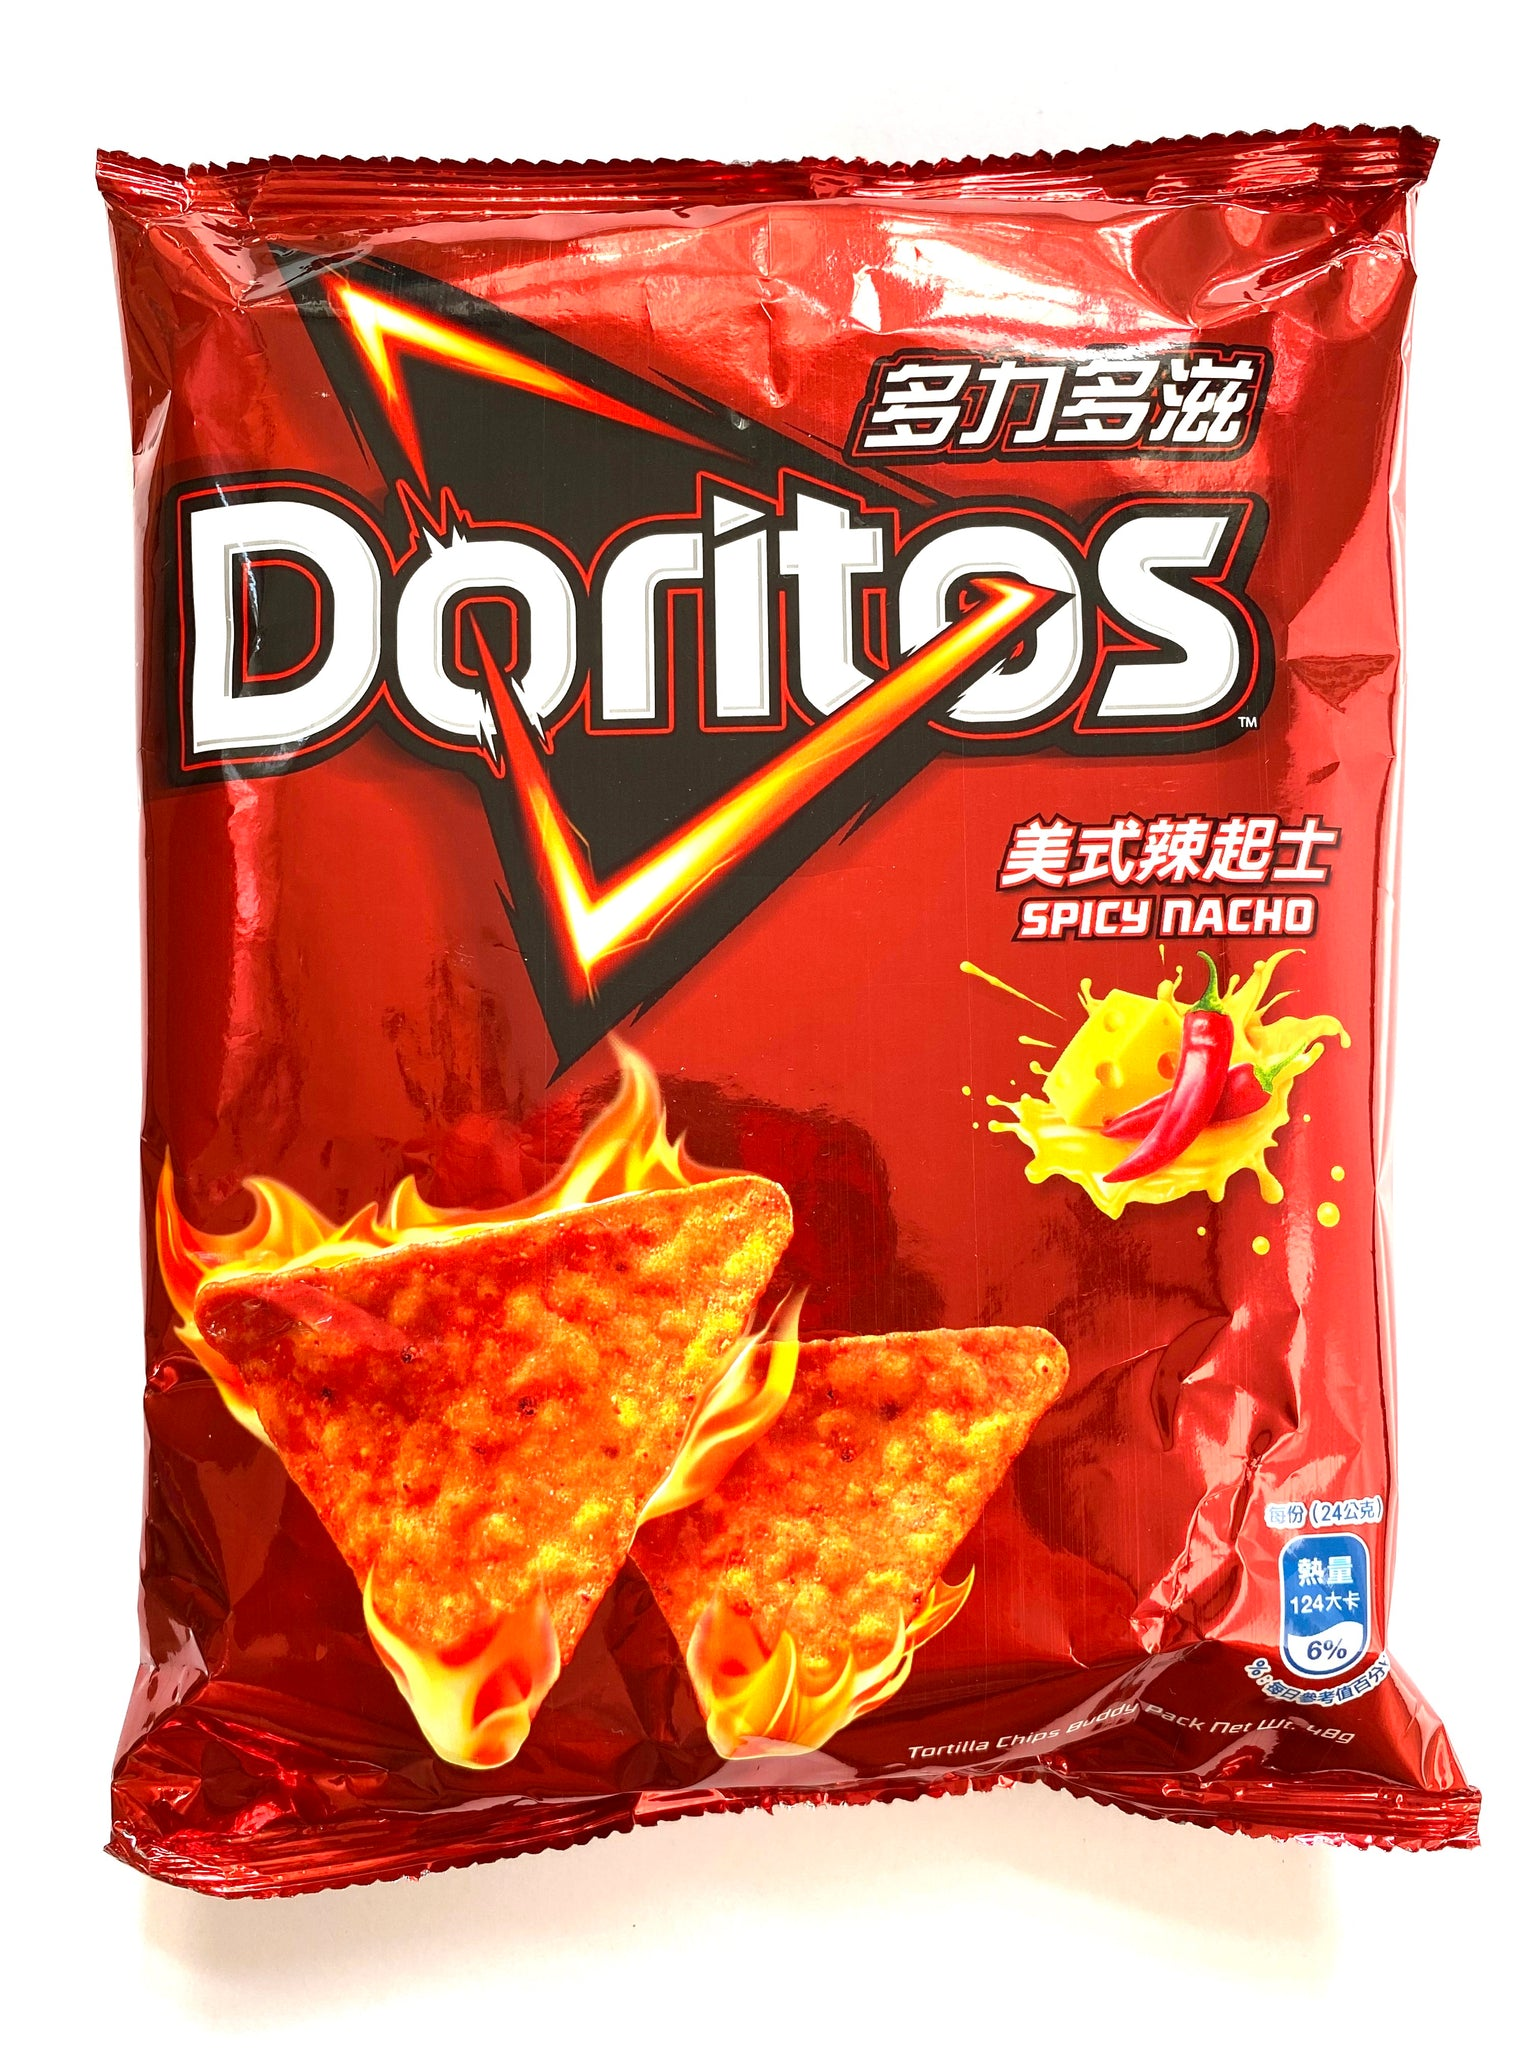 Doritos Spicy Nacho (Taiwan)